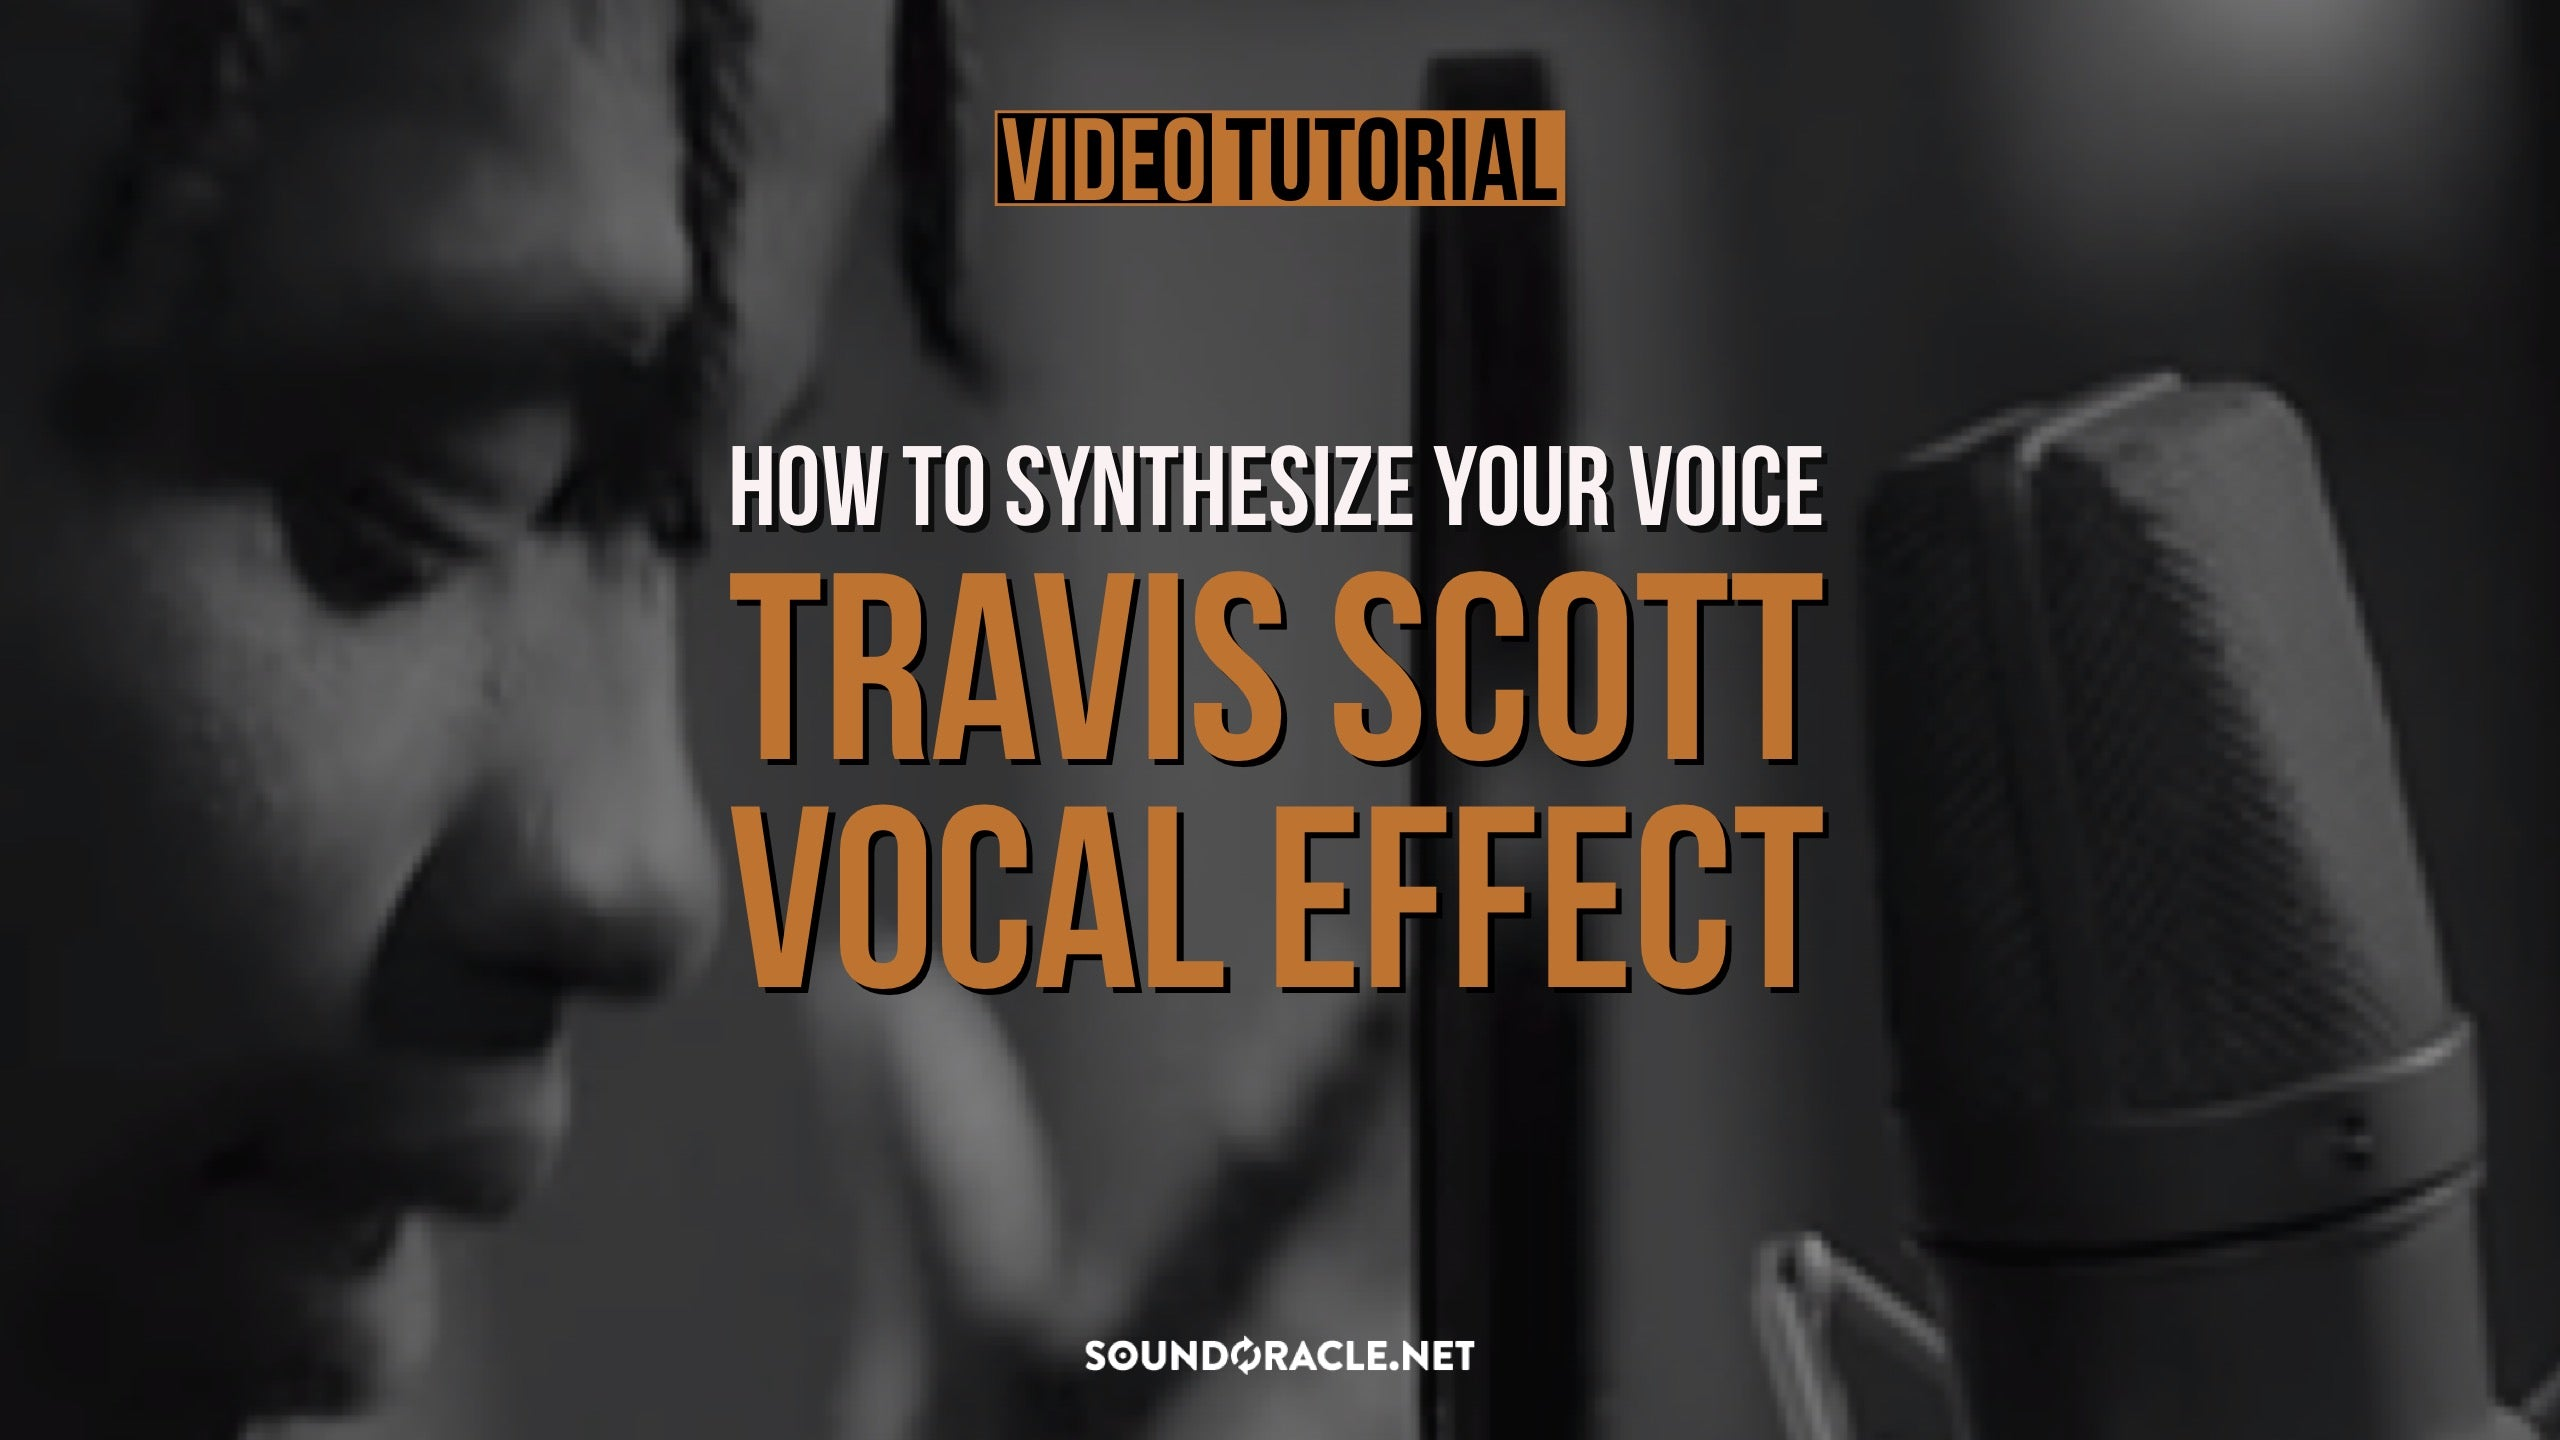 Tutorial - Travis Scott Vocal Effect (How To Synthesize Your